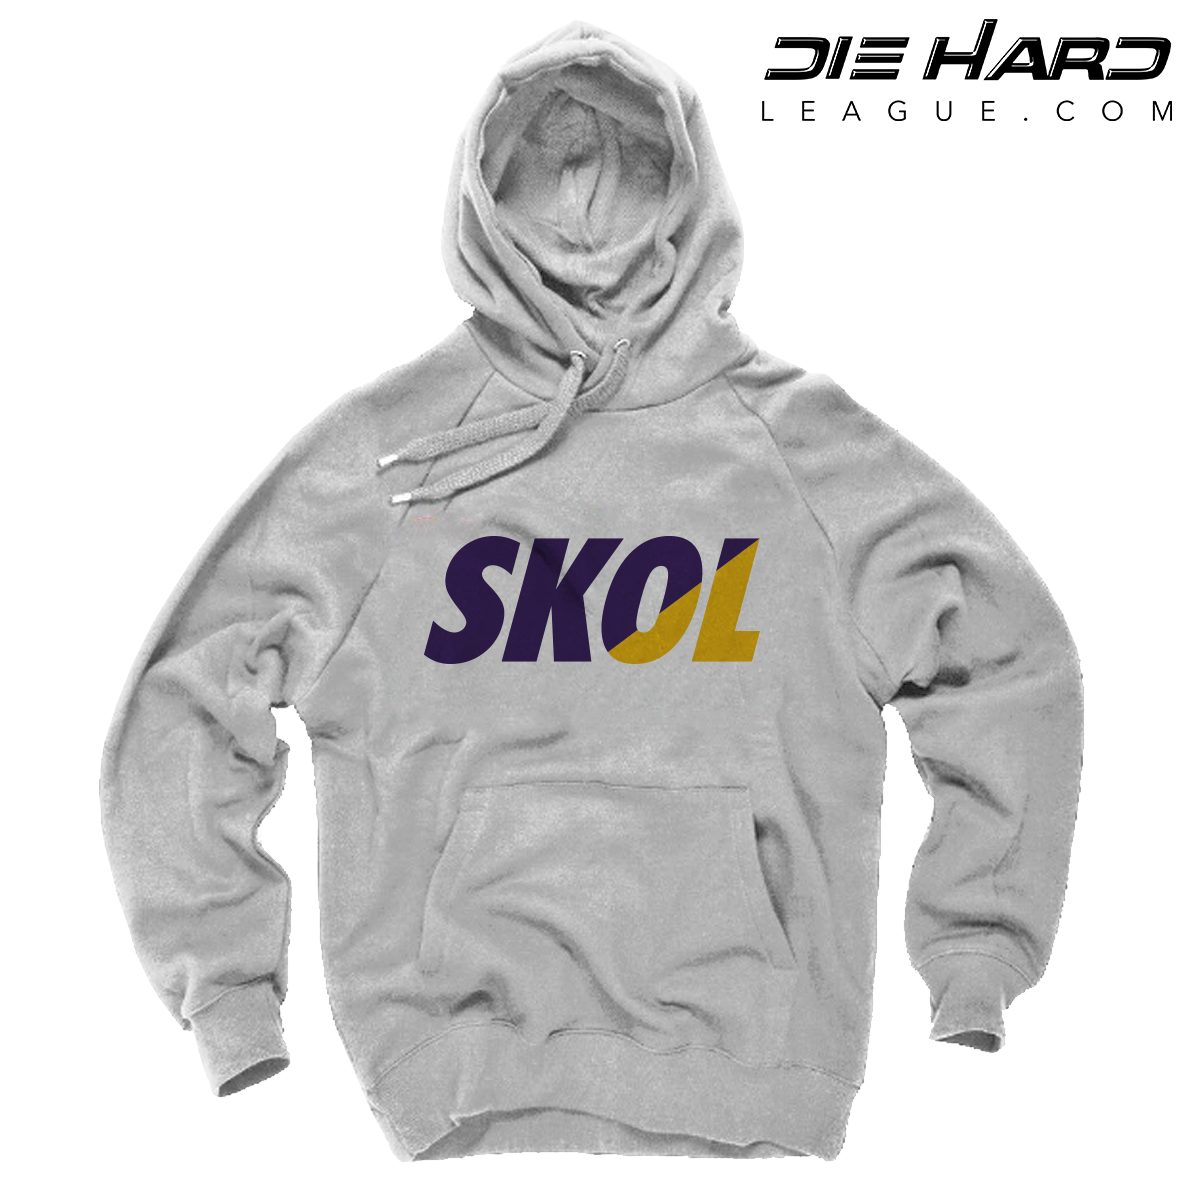 Shop. Home Minnesota Vikings Shop Vikings Sweatshirt Minnesota Vikings  Hoodies Mens ... e1f2eb4d8